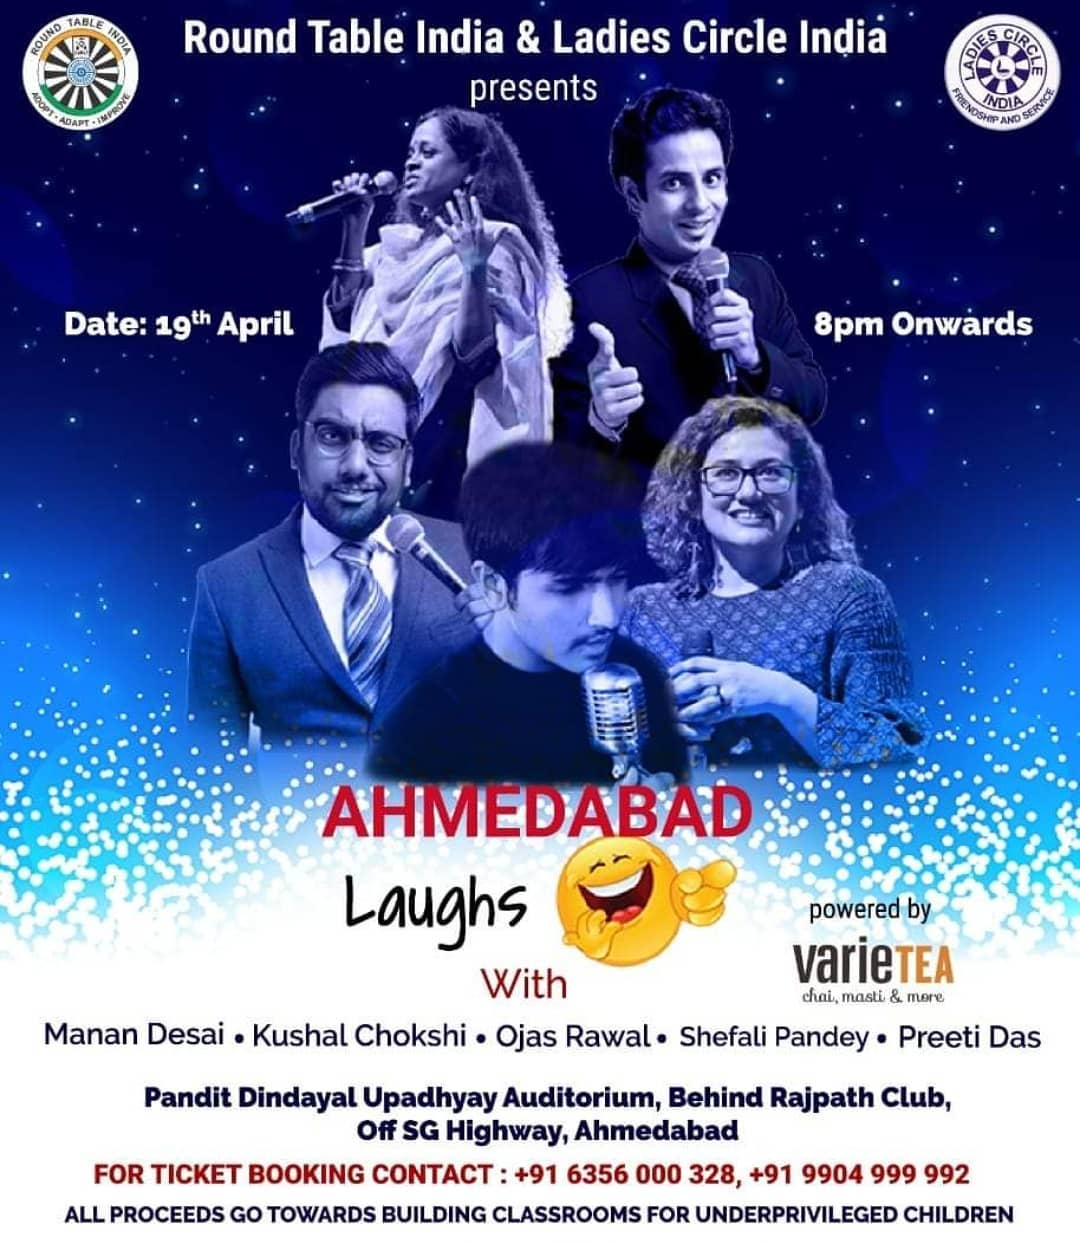 Ahmedabad tonight! 😎 See you @ 8pm @ Pandit Dindayal Upadhyay Auditorium behind Rajpath Club! Book your tickets ASAP! All proceeds go towards building classrooms for underprivileged children 🏫 . Performing with @thecomedyfactoryindia @mahilamanch @instafunny_manan @iampreetidas @shefalipandey and @kushalchokshiofficial . #Ahmedabad #gujarat #show #comedy #tonight #bethere #charity #india #gujju #gujarati #OjasRawal #ojas #comedian #actor #entertainment #showbiz #onstage #live #amdavad #event #stageshow #comedians #standup #standupcomedians #standupcomedy #funny #letsdothis #seeyoutonight #dontmissthis #yay